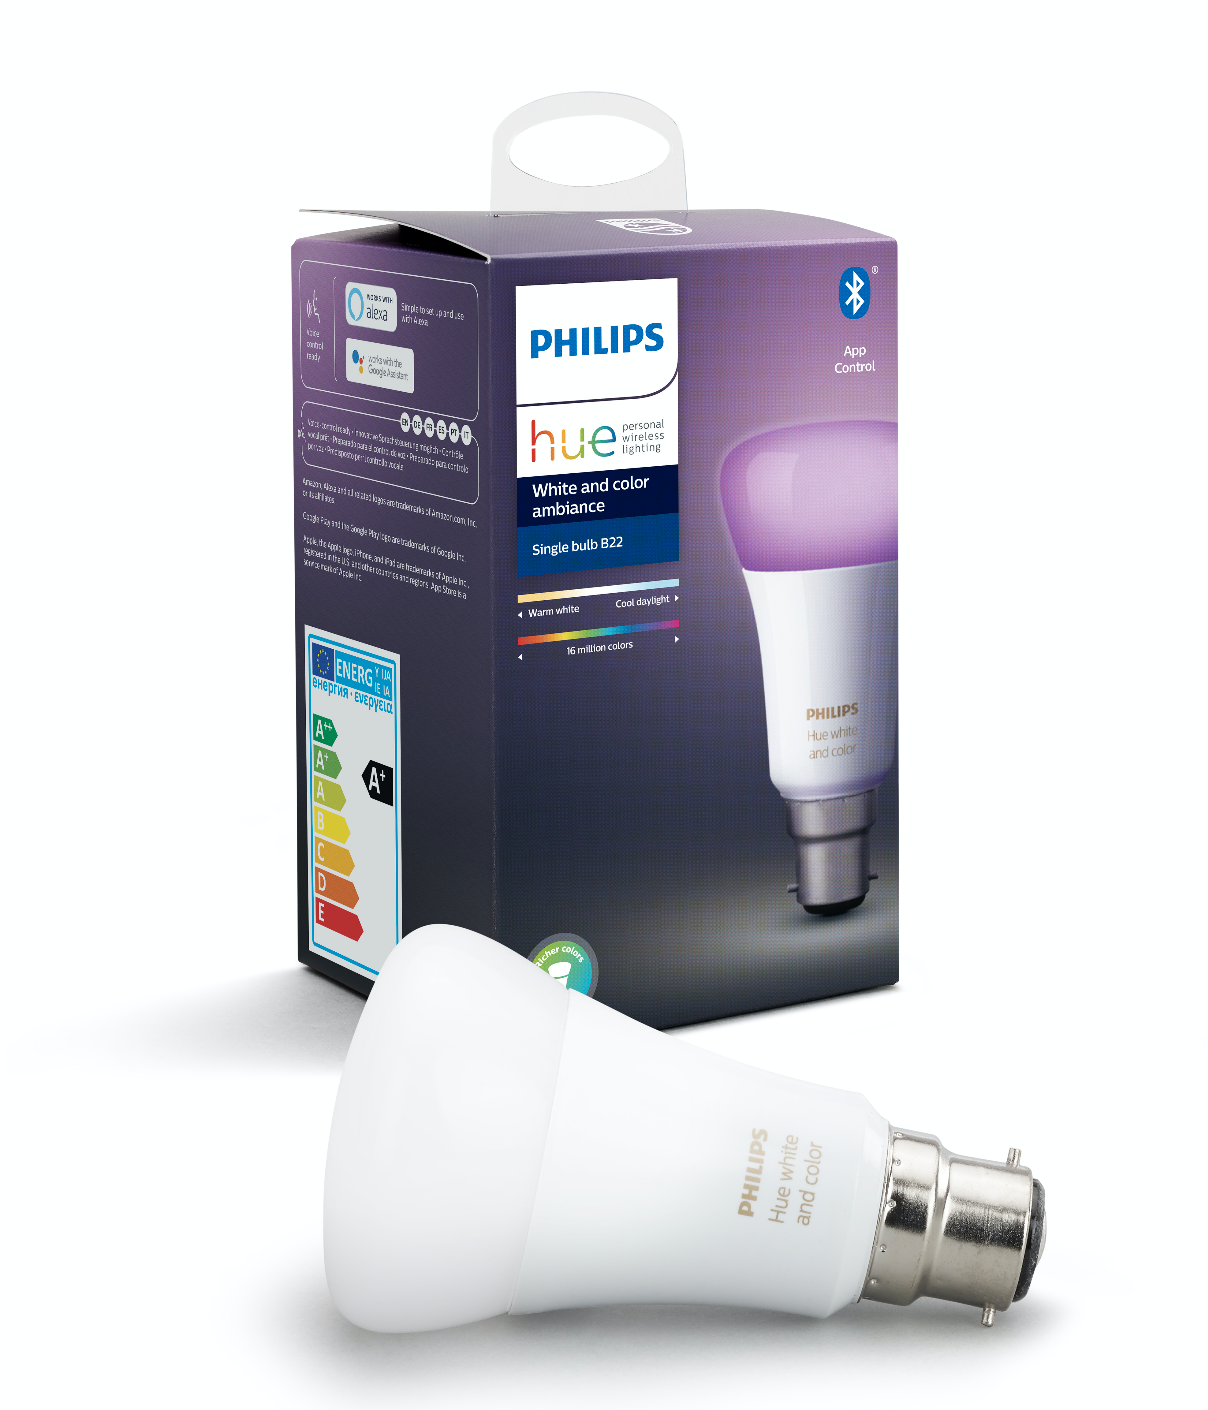 Philips Hue just made its smart light system much simpler (and cheaper)